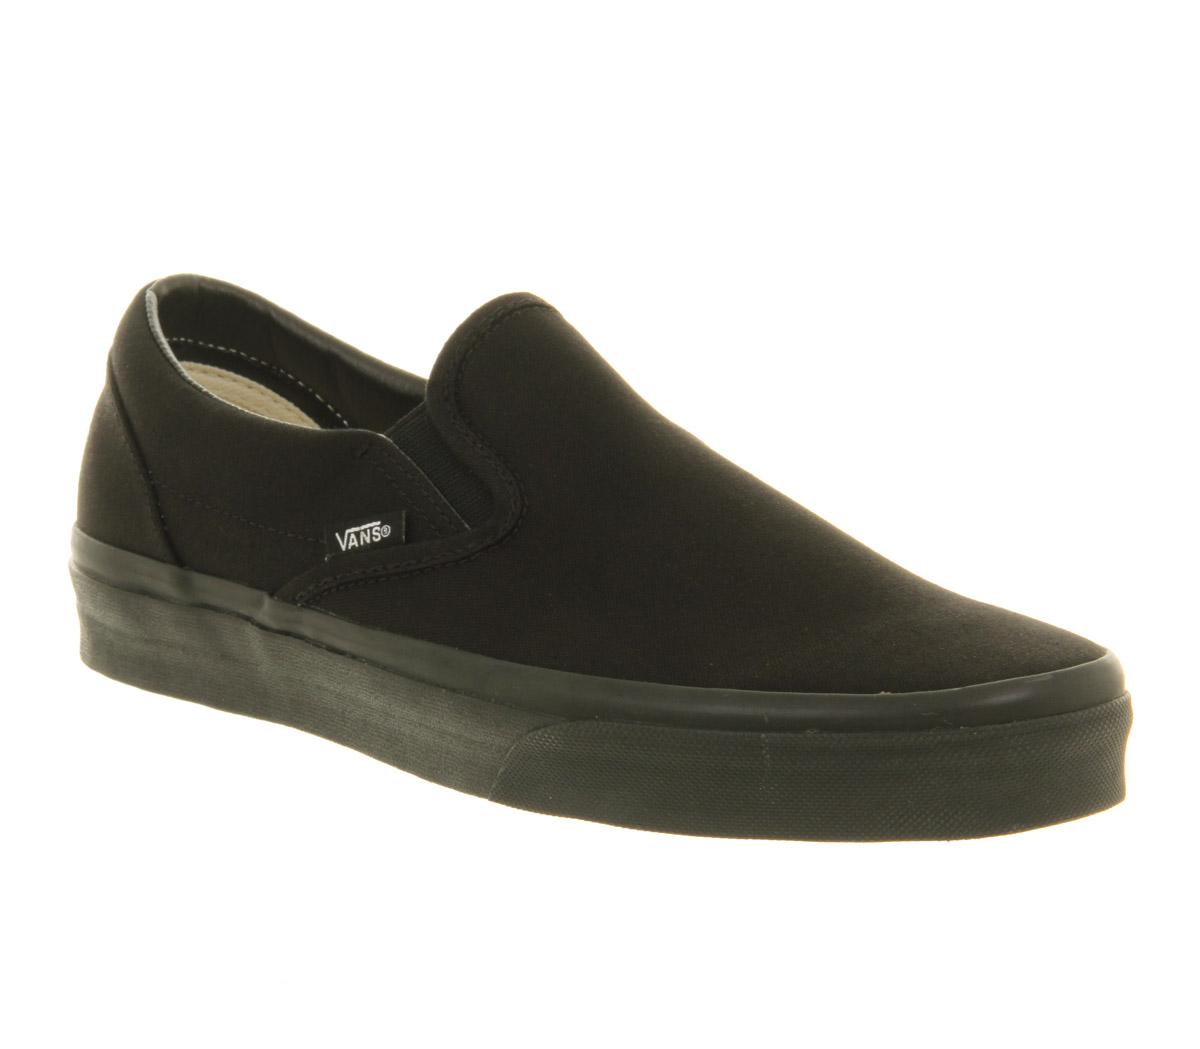 Vans-Classic-Slip-On-Black-Mono-Trainers-Shoes